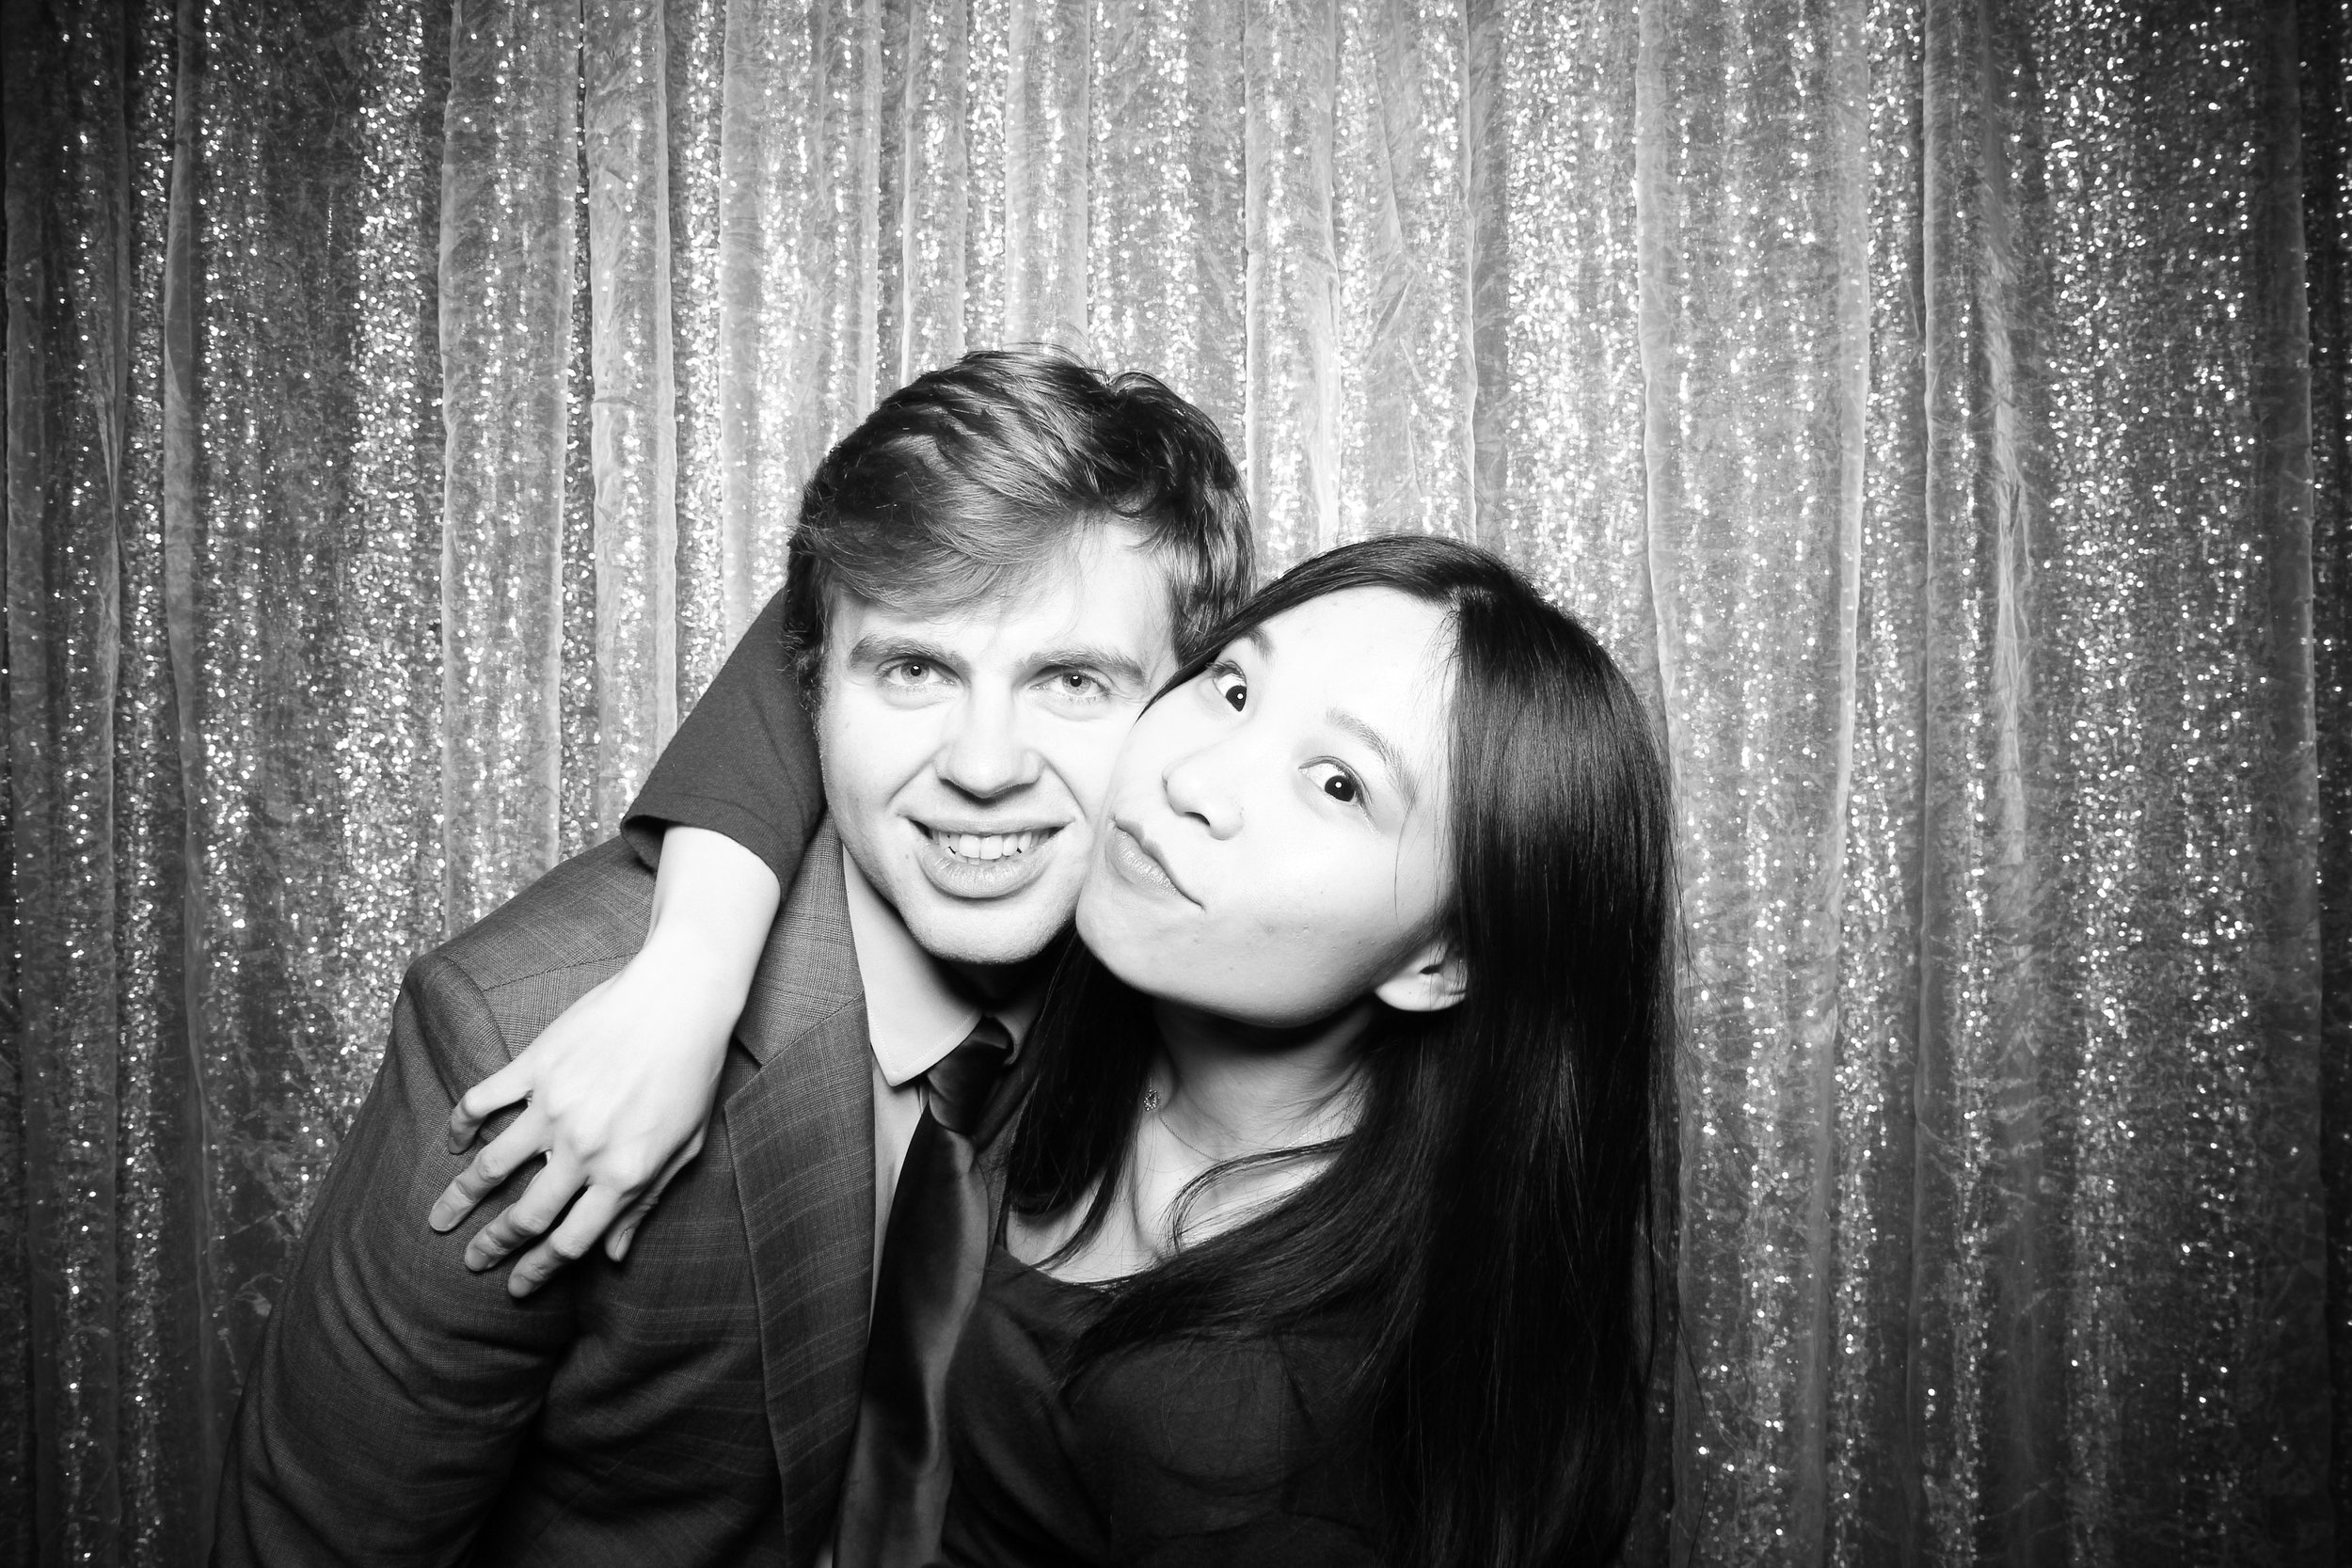 Chicago_Vintage_Photobooth_Montgomery_Club_Holiday_Party_17.jpg